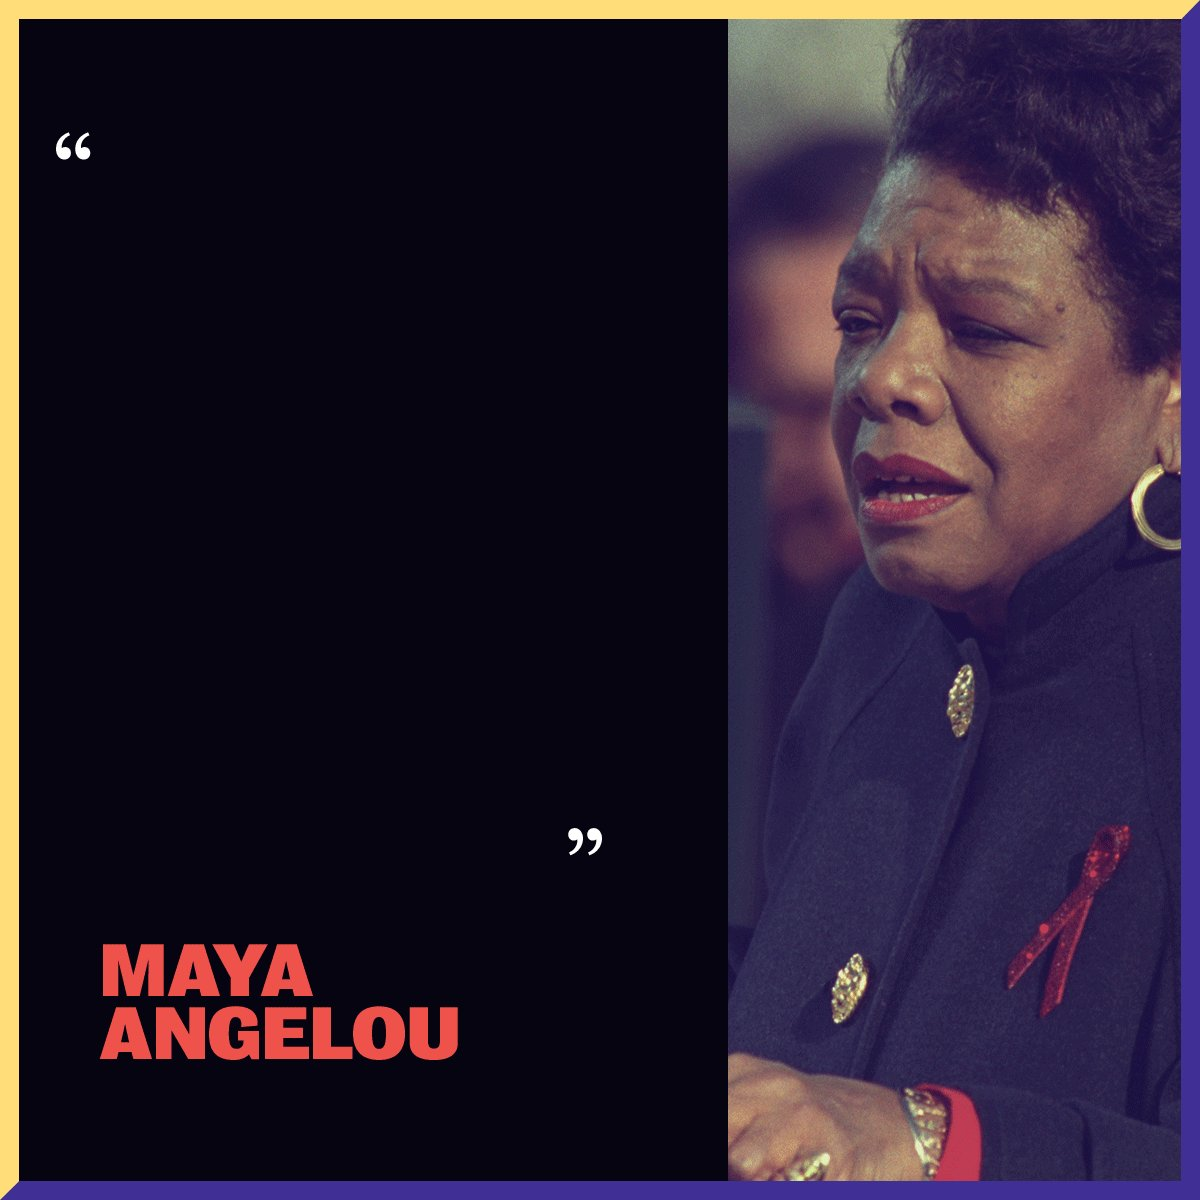 Civil rights leader and poet Maya Angelou had an immeasurable impact on the way I view the world and my place in it. While she encountered many hardships throughout her life, her words inspired generations to fight for freedom, equality, and justice.